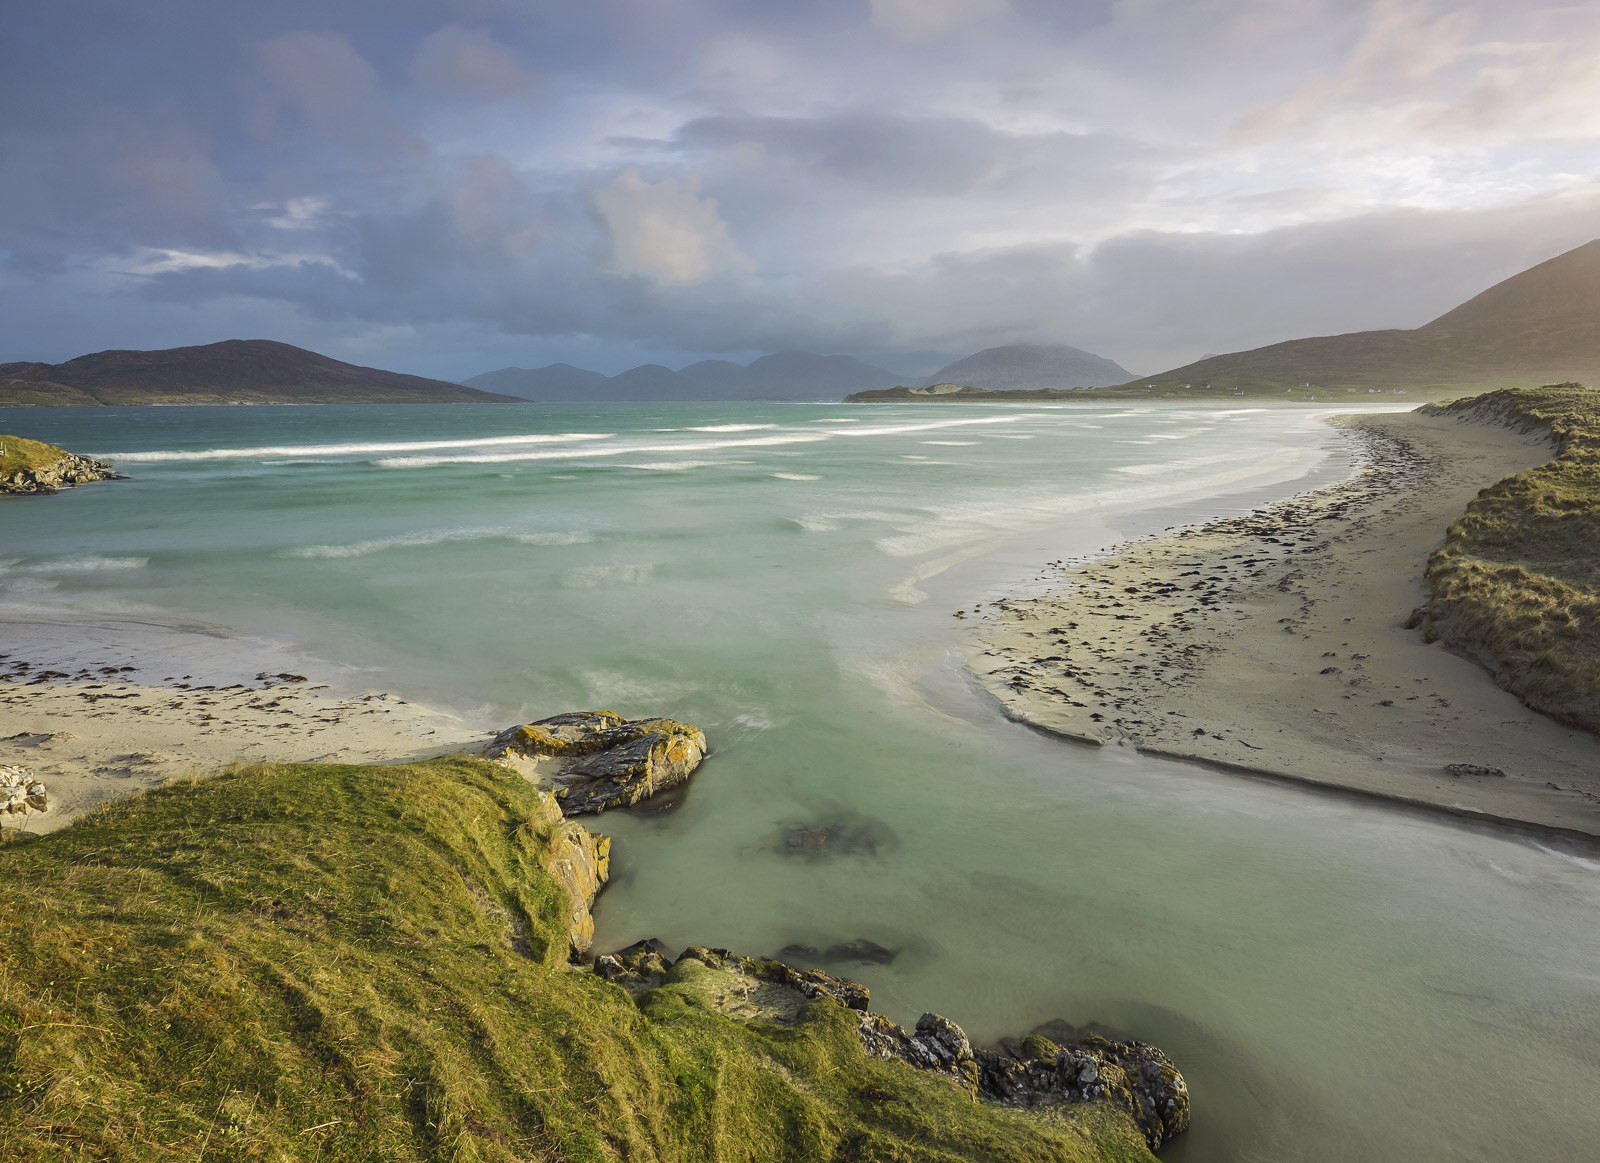 Harris is not really a sunrise location. At least not if you hope to photograph the rising sun directly. Most of...